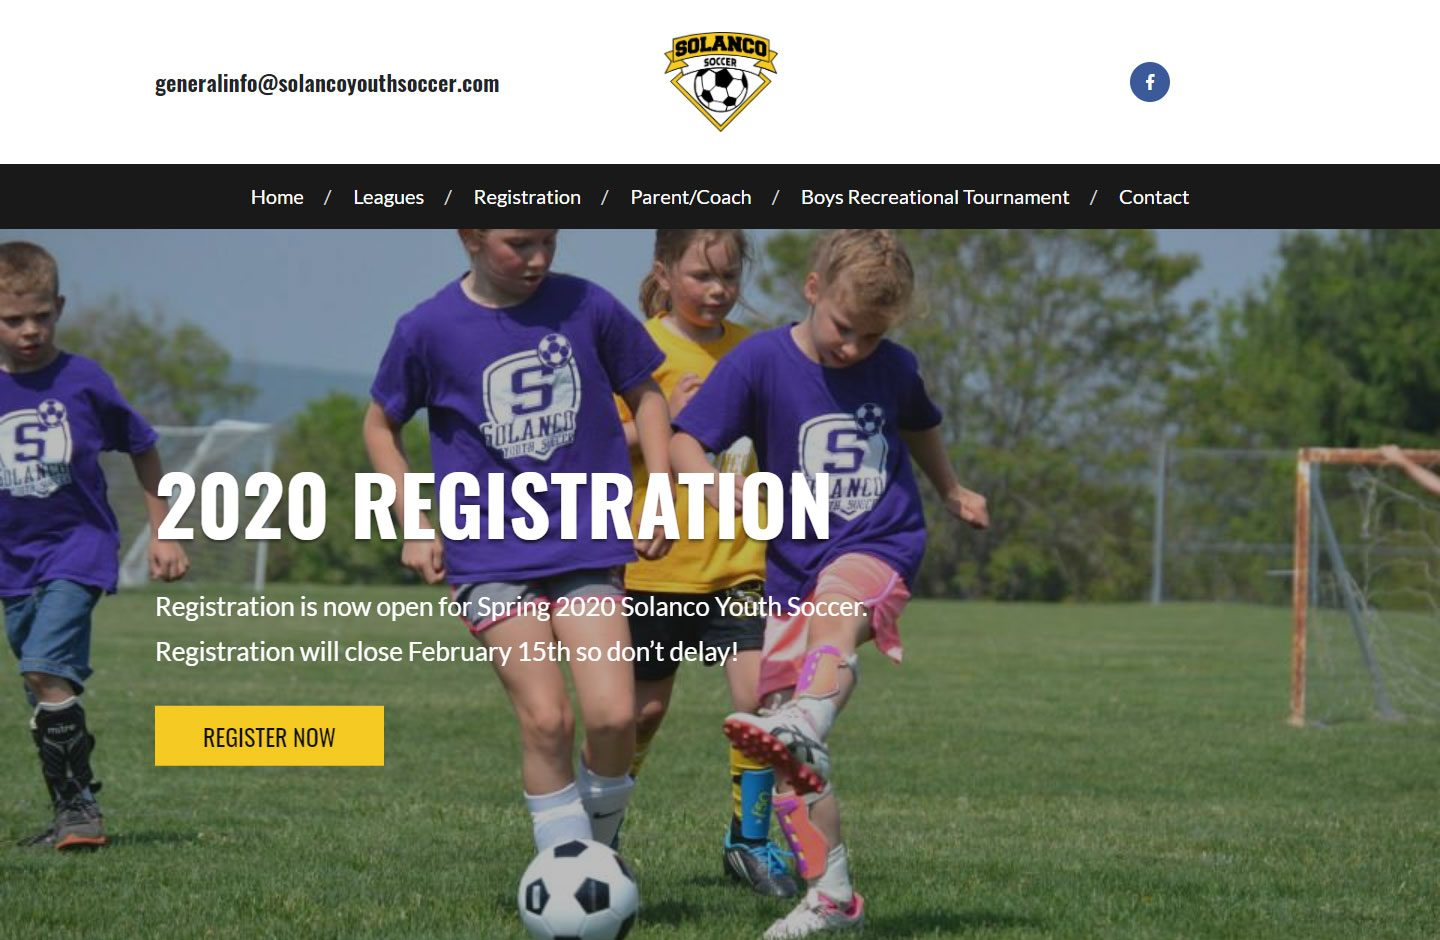 Solanco Youth Soccer